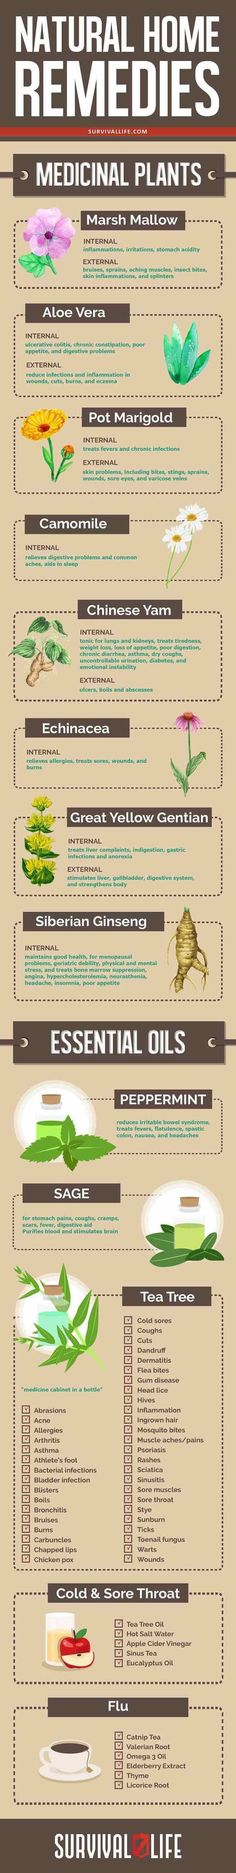 Natural home remedies.Medicinal plants are crucial to your health and wellness in a survival situation. Get to know the 11 medicinal plants you can grow in your backyard! Natural Health Remedies, Natural Cures, Natural Healing, Herbal Remedies, Holistic Healing, Natural Treatments, Survival Life, Survival Food, Survival Hacks